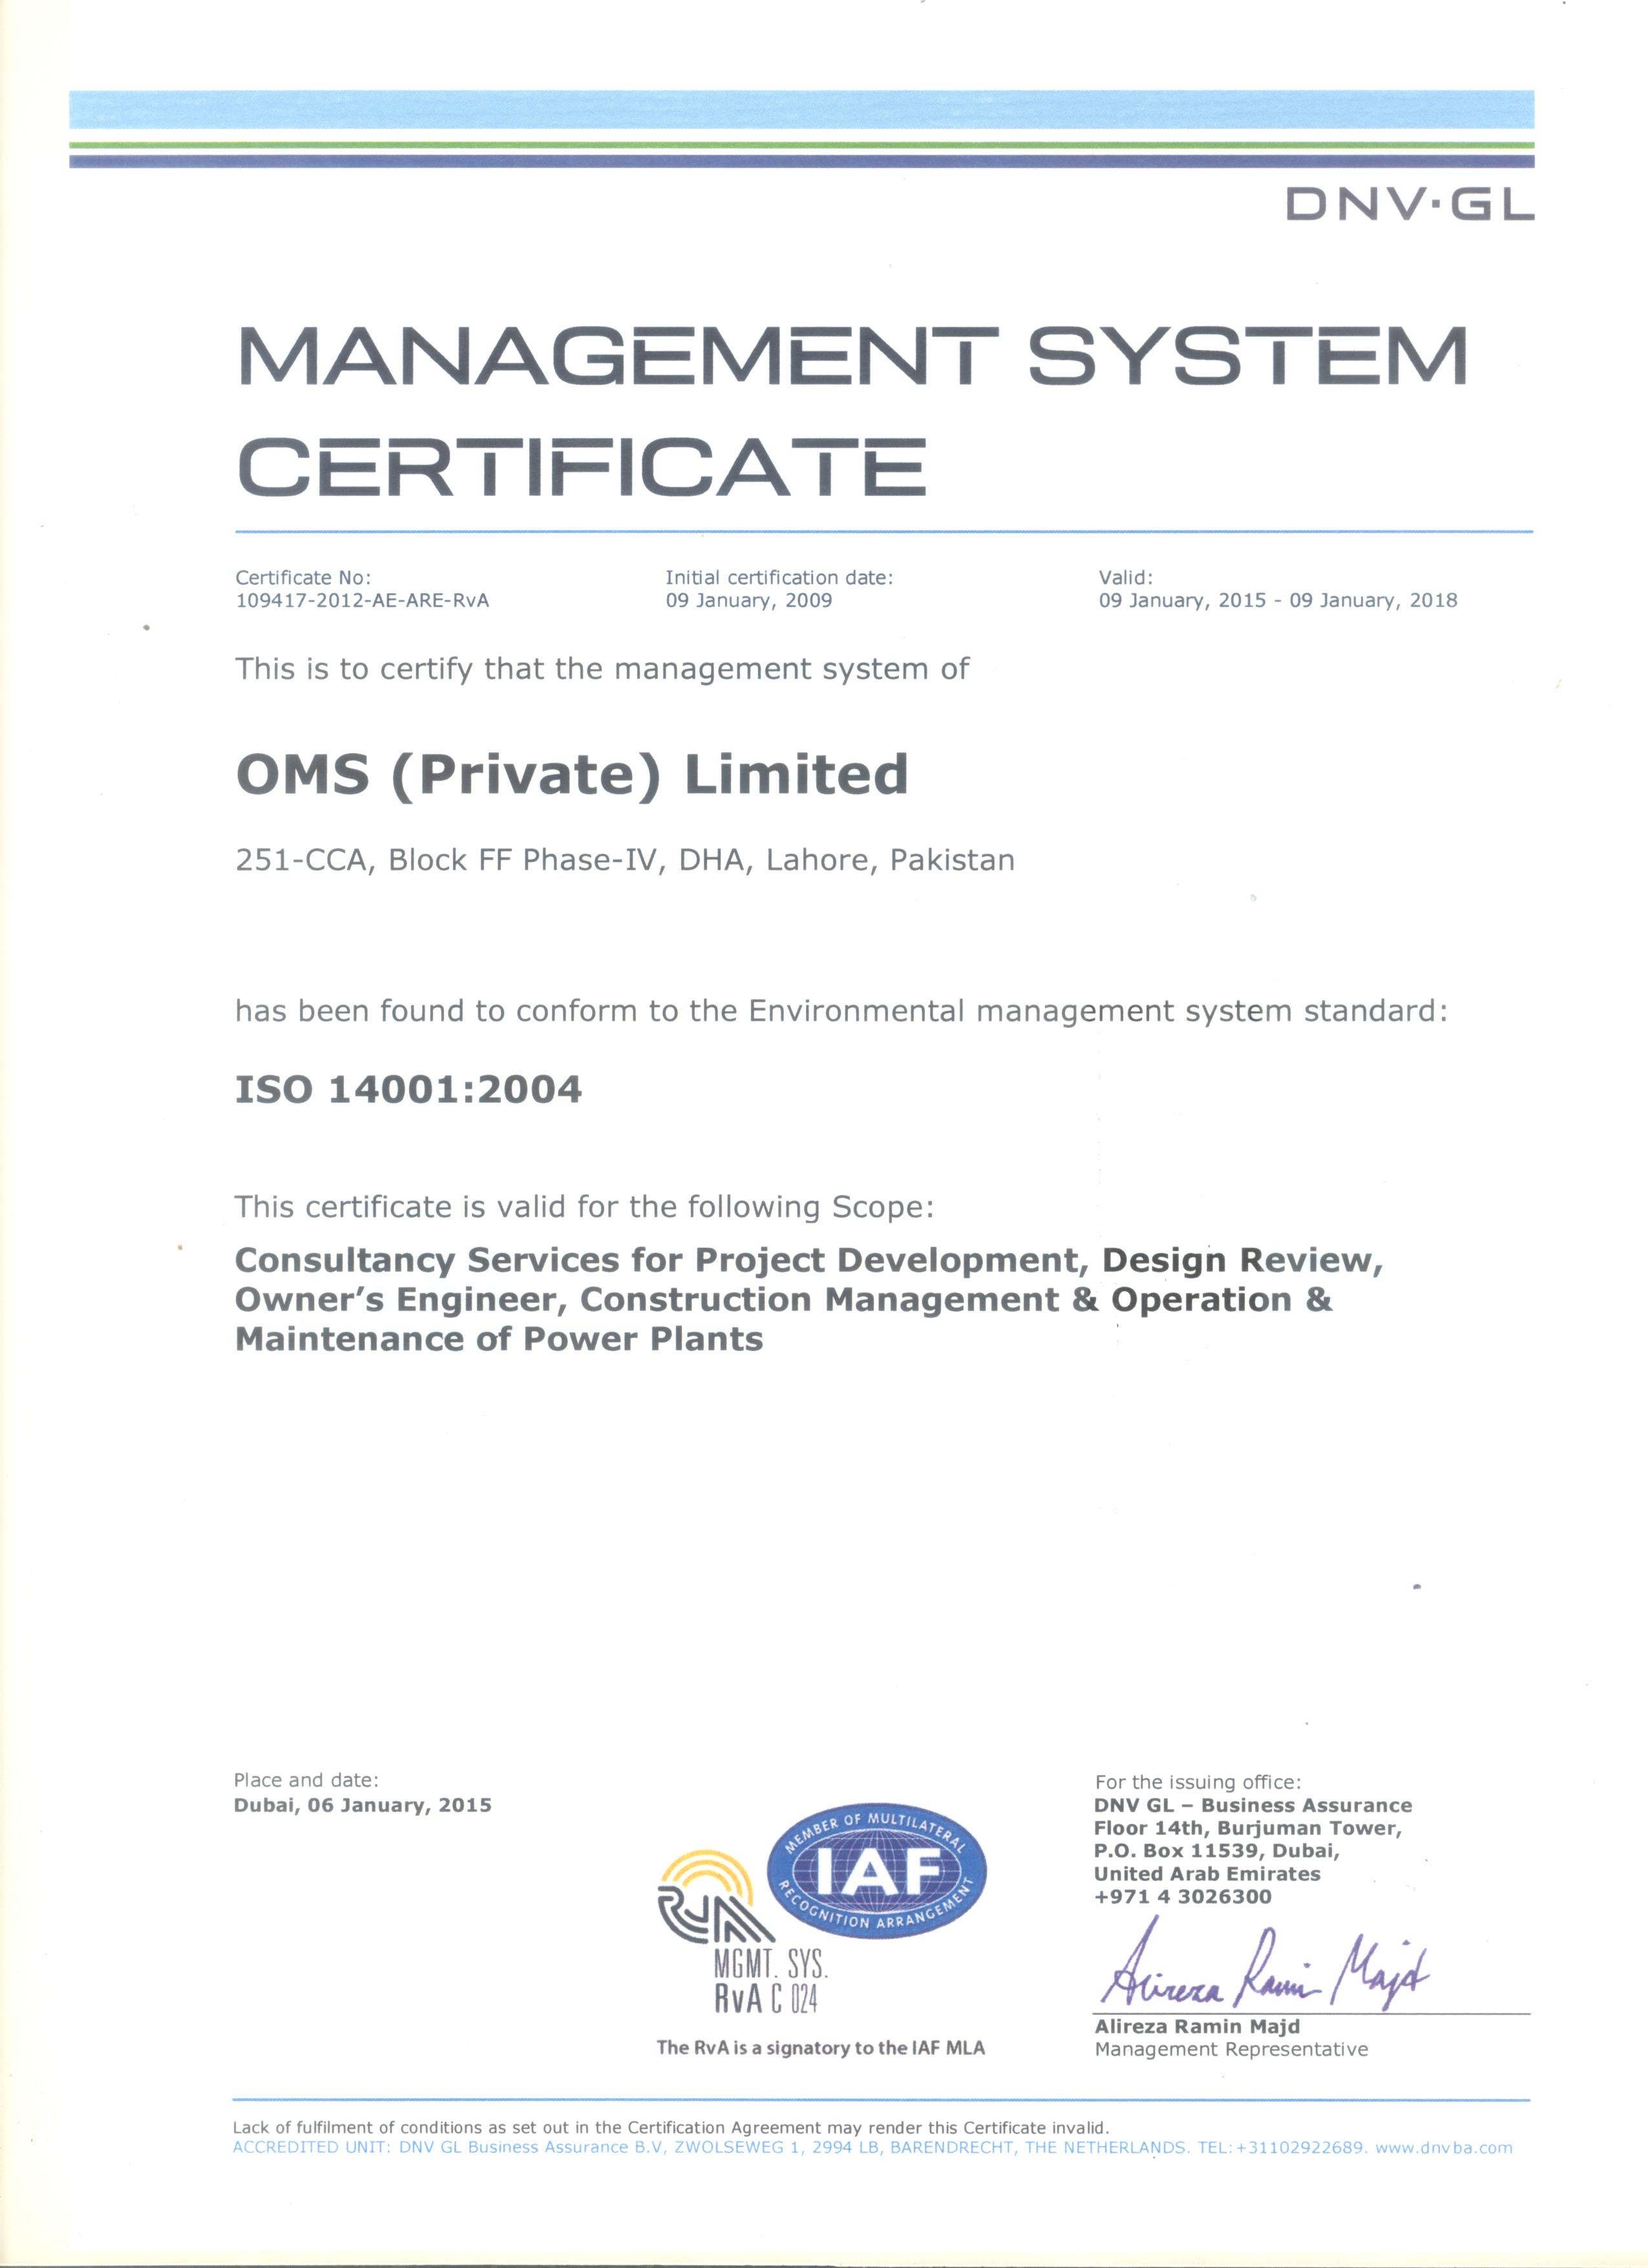 ISO 14001:2004 image